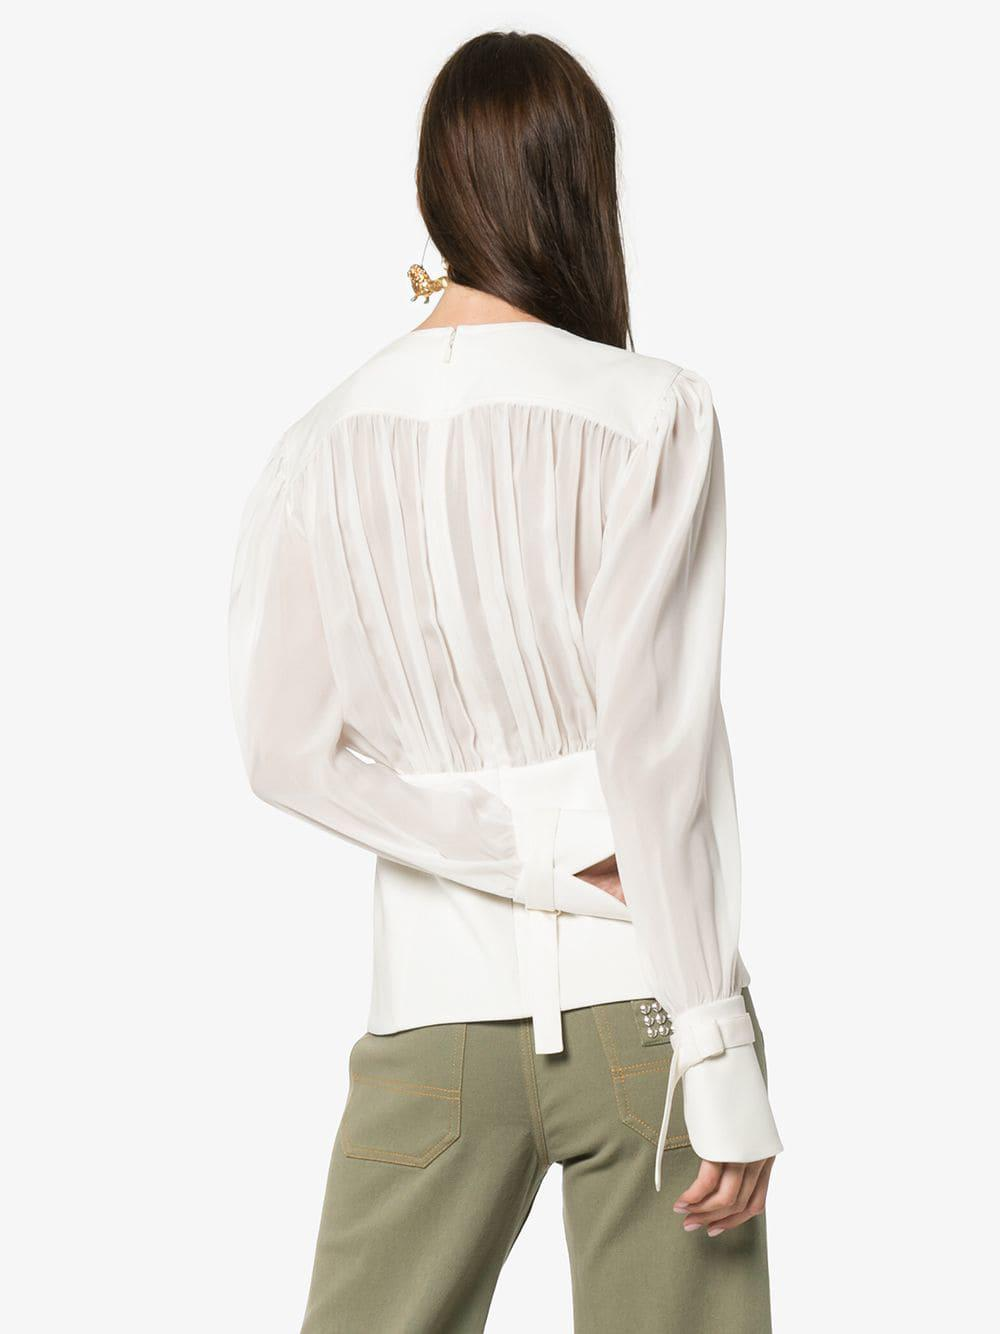 cd25b6ac944a7 Chloé - White Sheer Gathered Silk Blouse - Lyst. View fullscreen